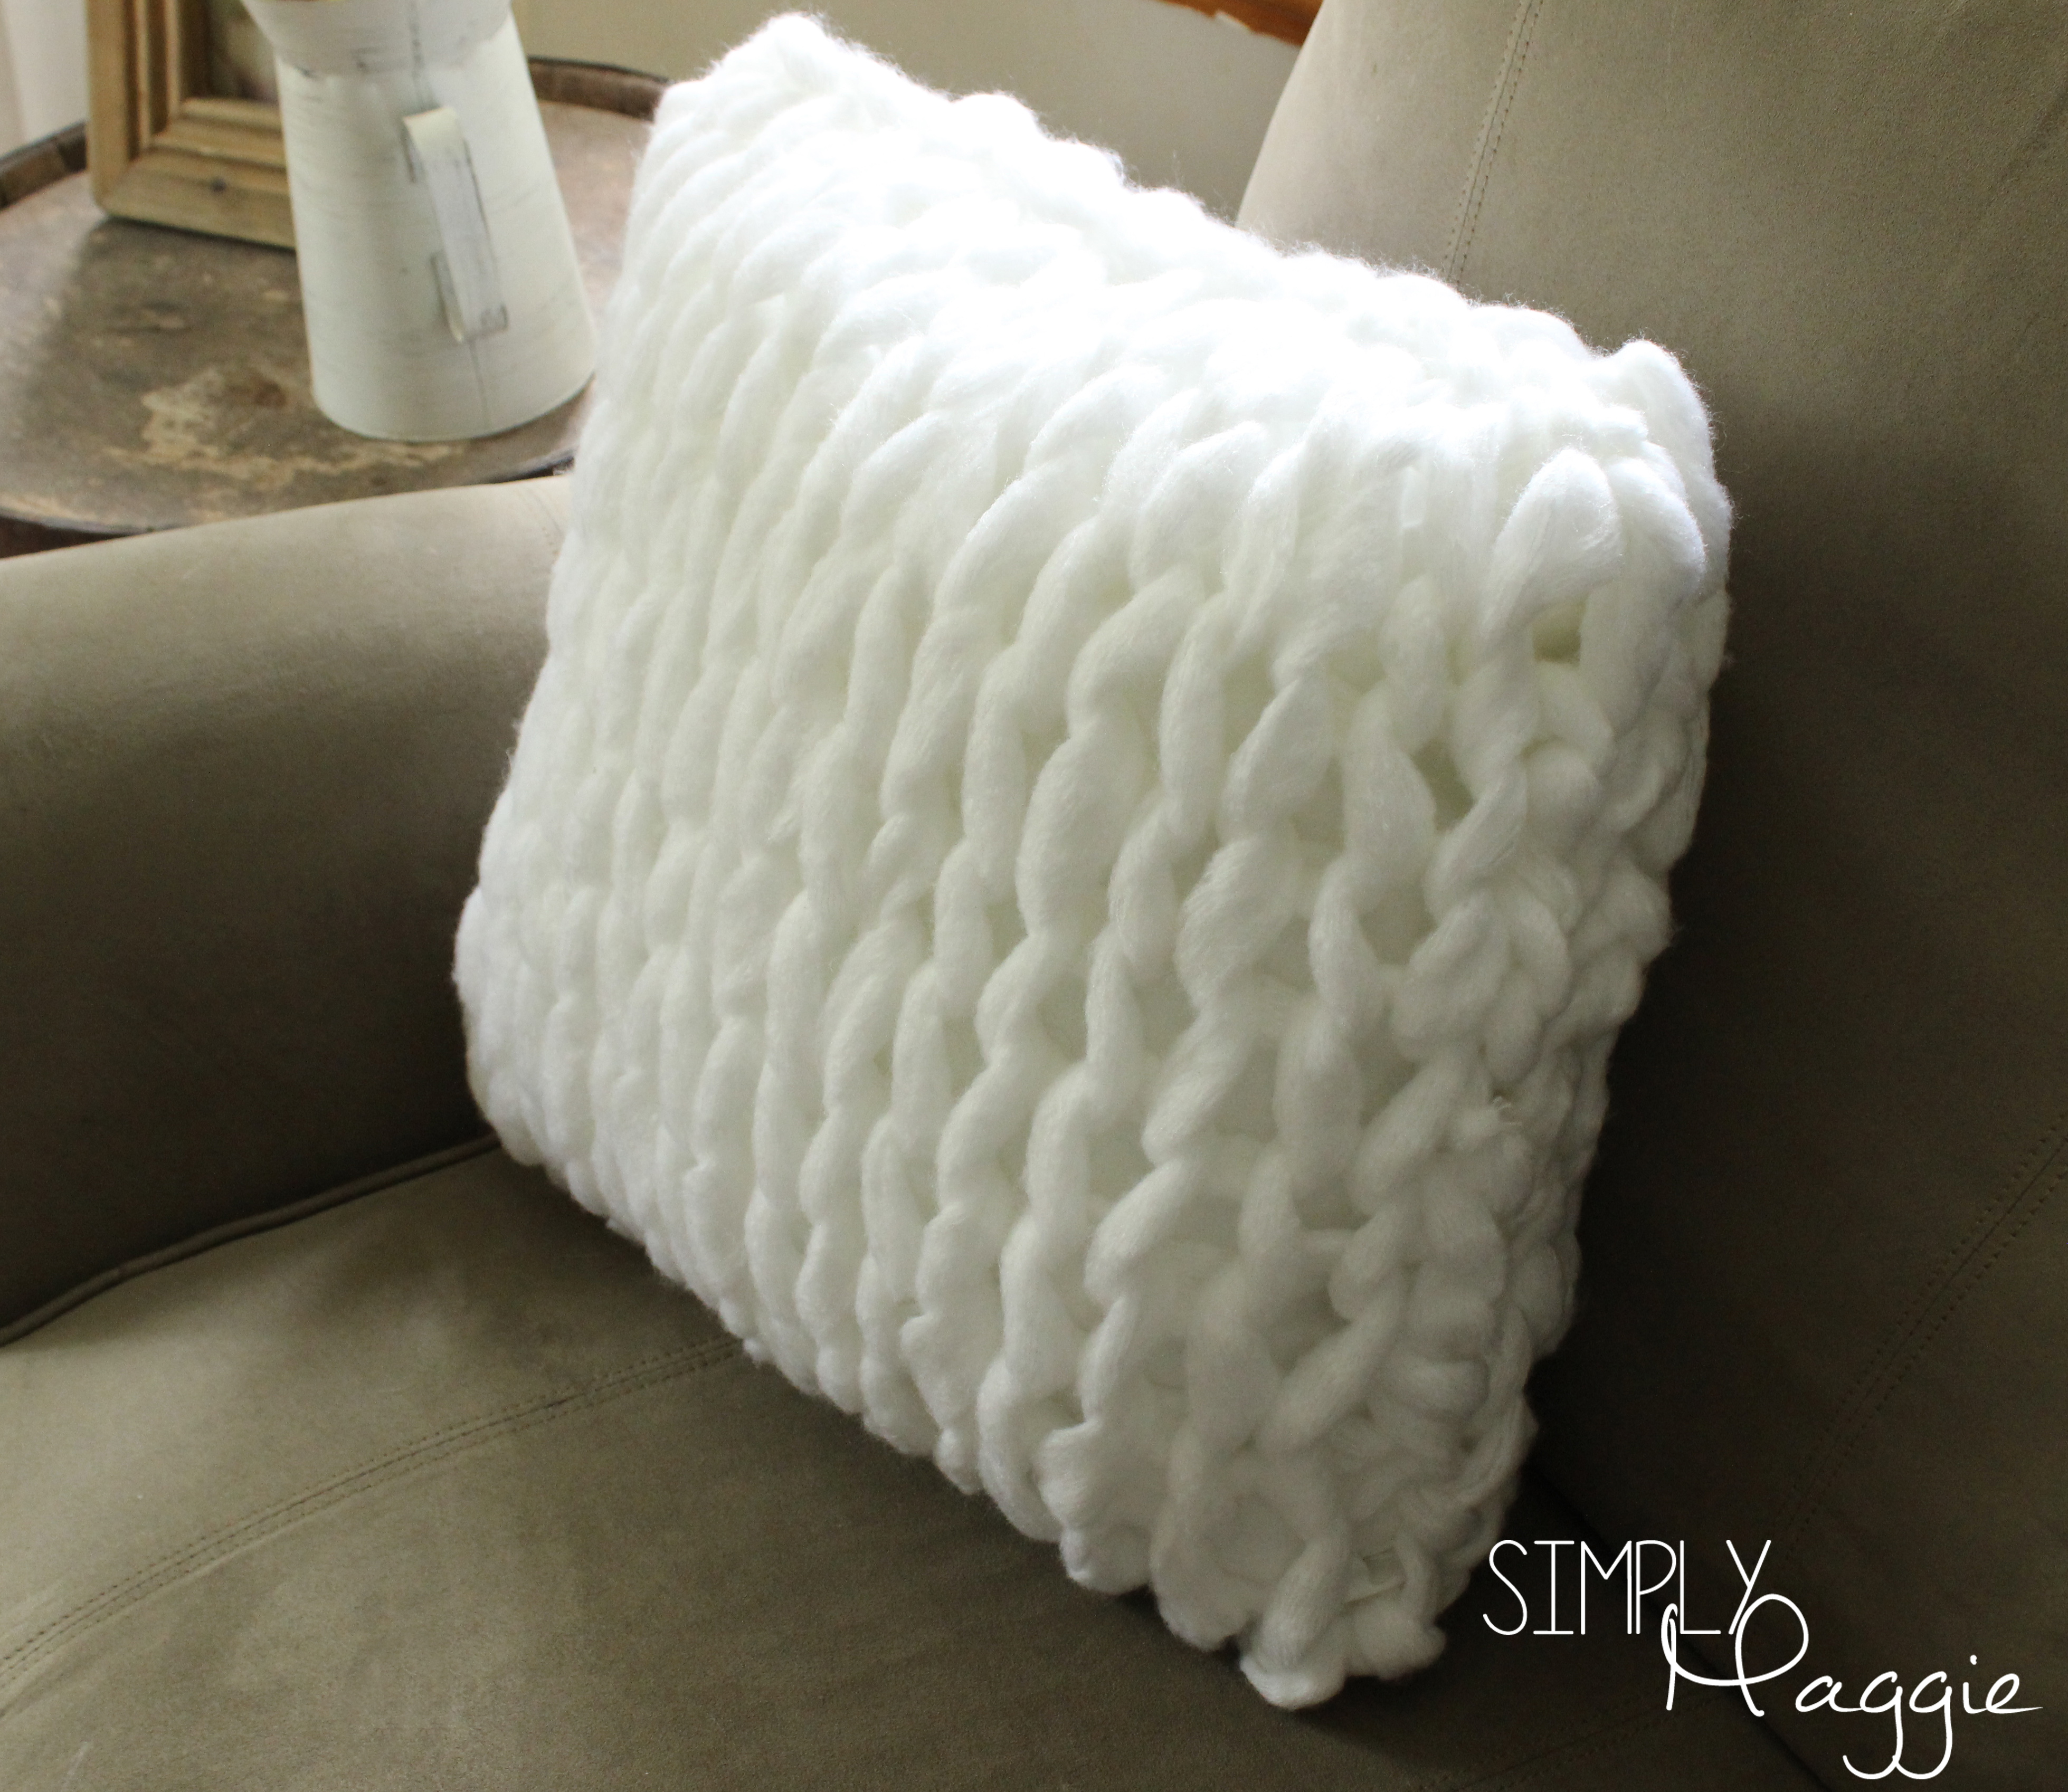 One hour arm knit pillow pattern simply maggie simplymaggie one hour arm knit pillow pattern simply maggie bankloansurffo Gallery